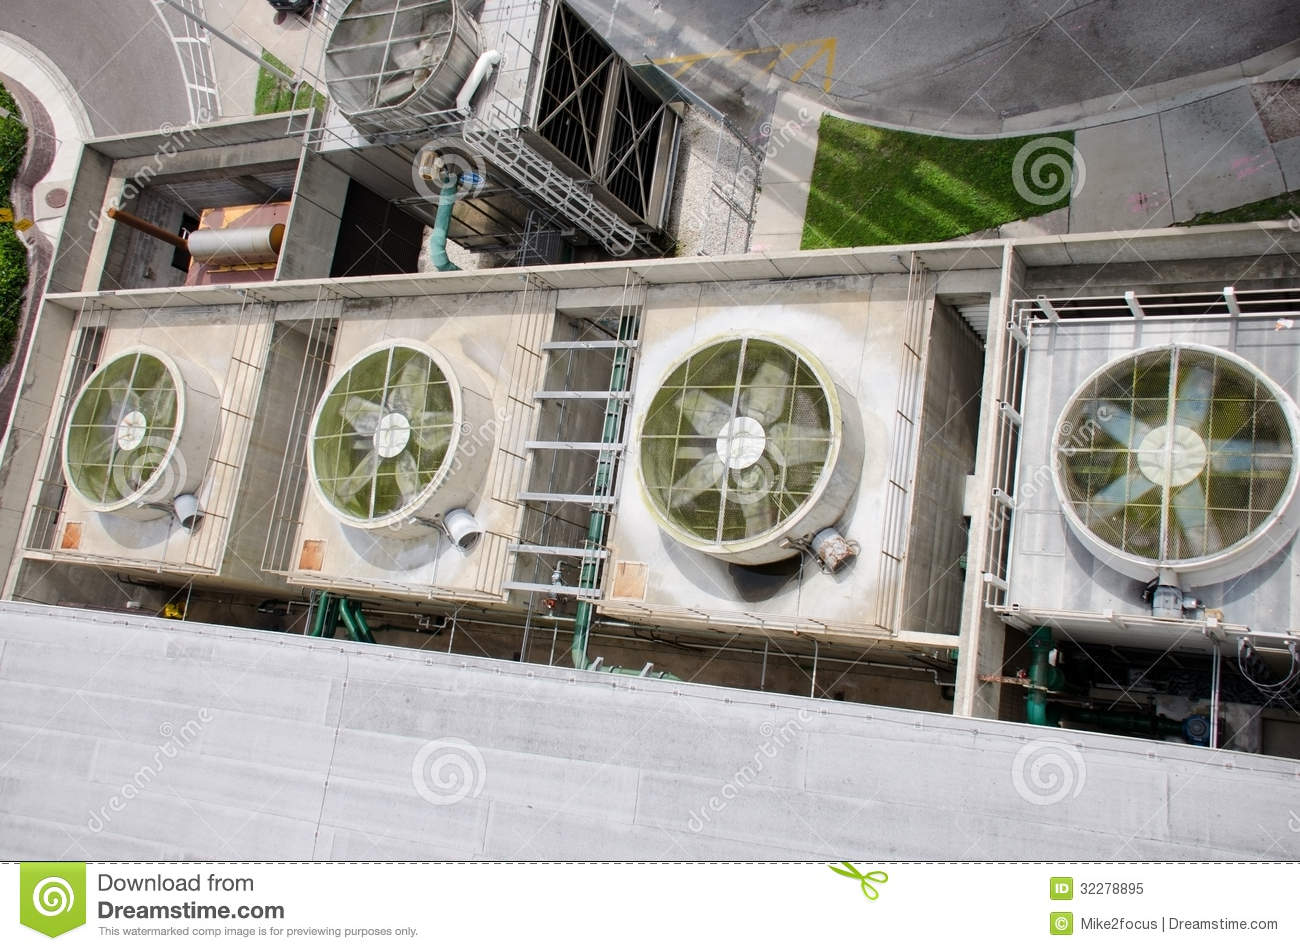 huge industrial fans building air conditioner conditioning system very  #82A328